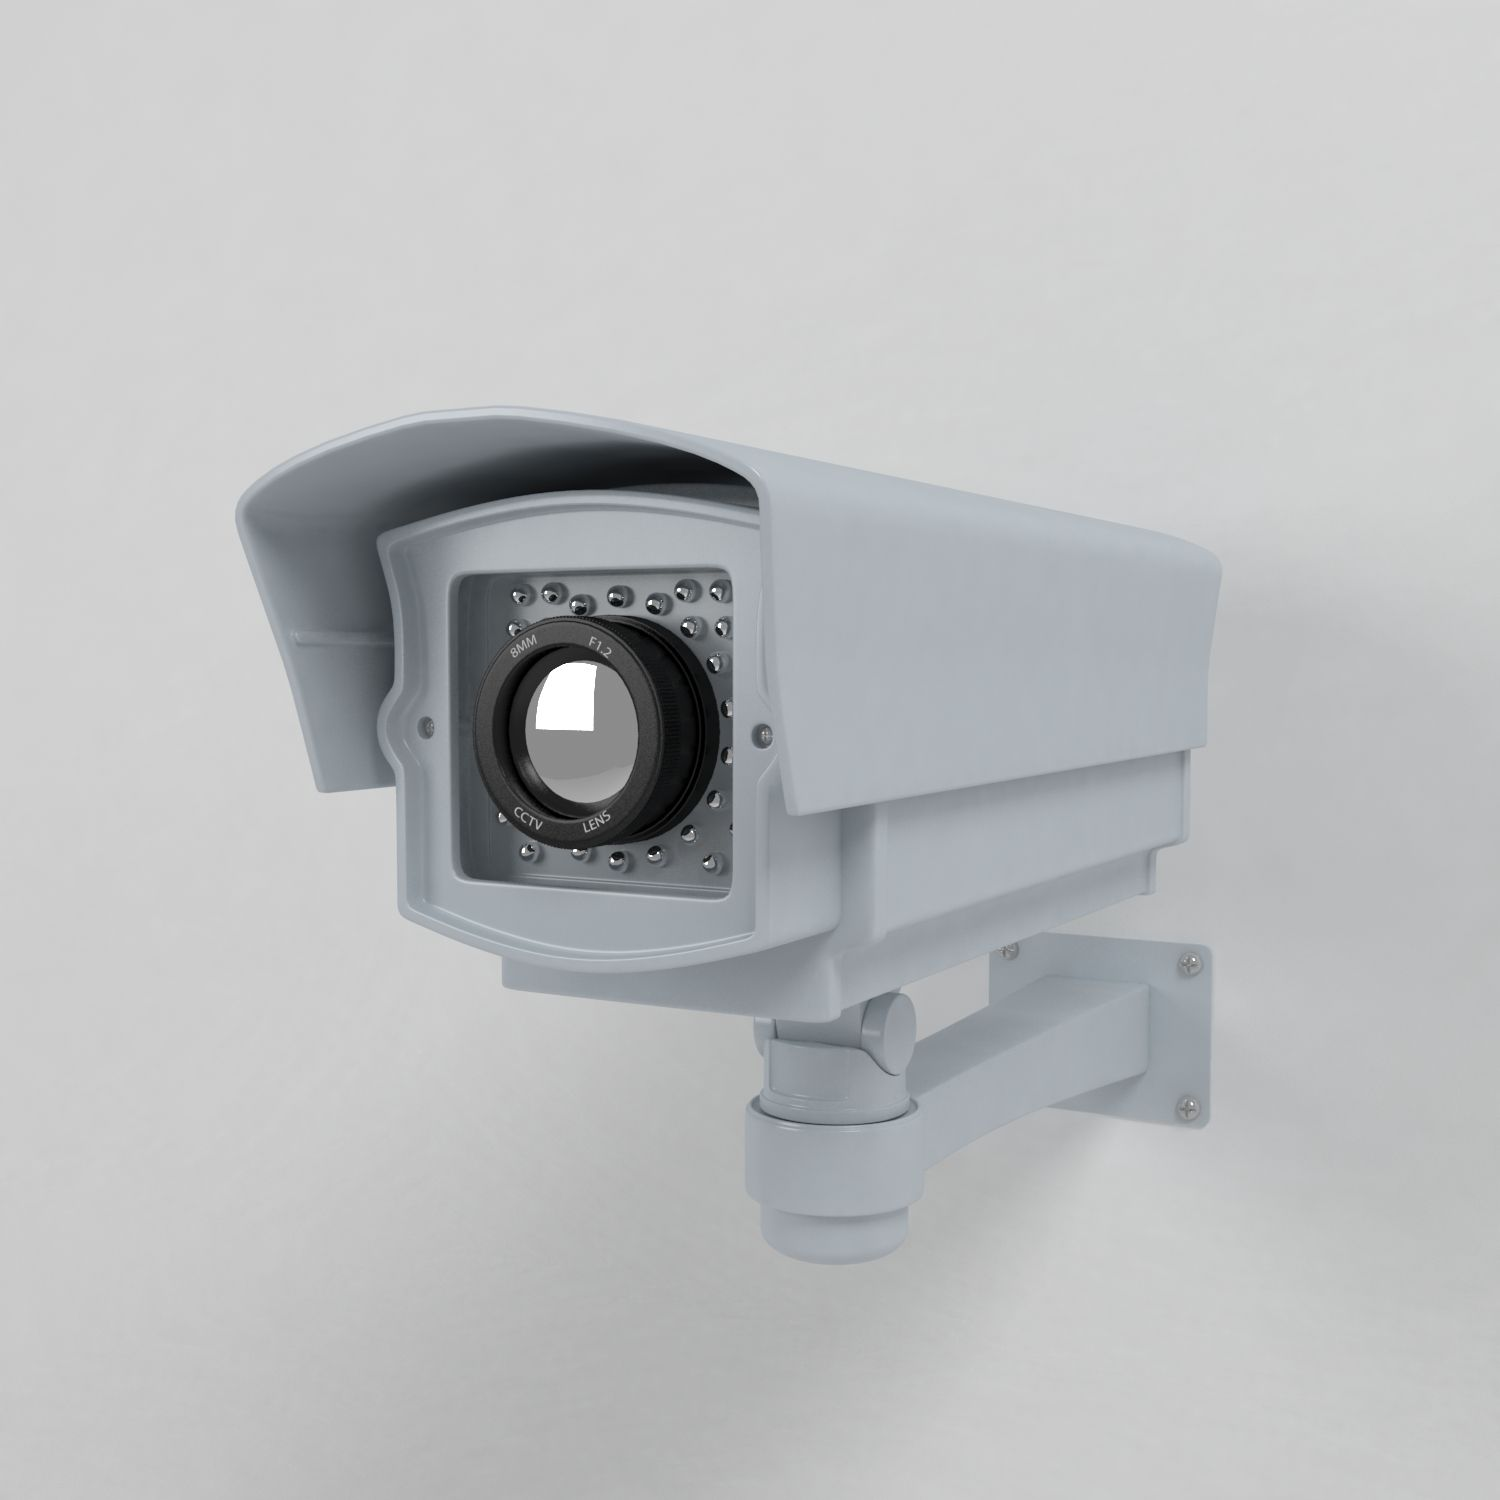 D model security camera cctv closed circuit cam